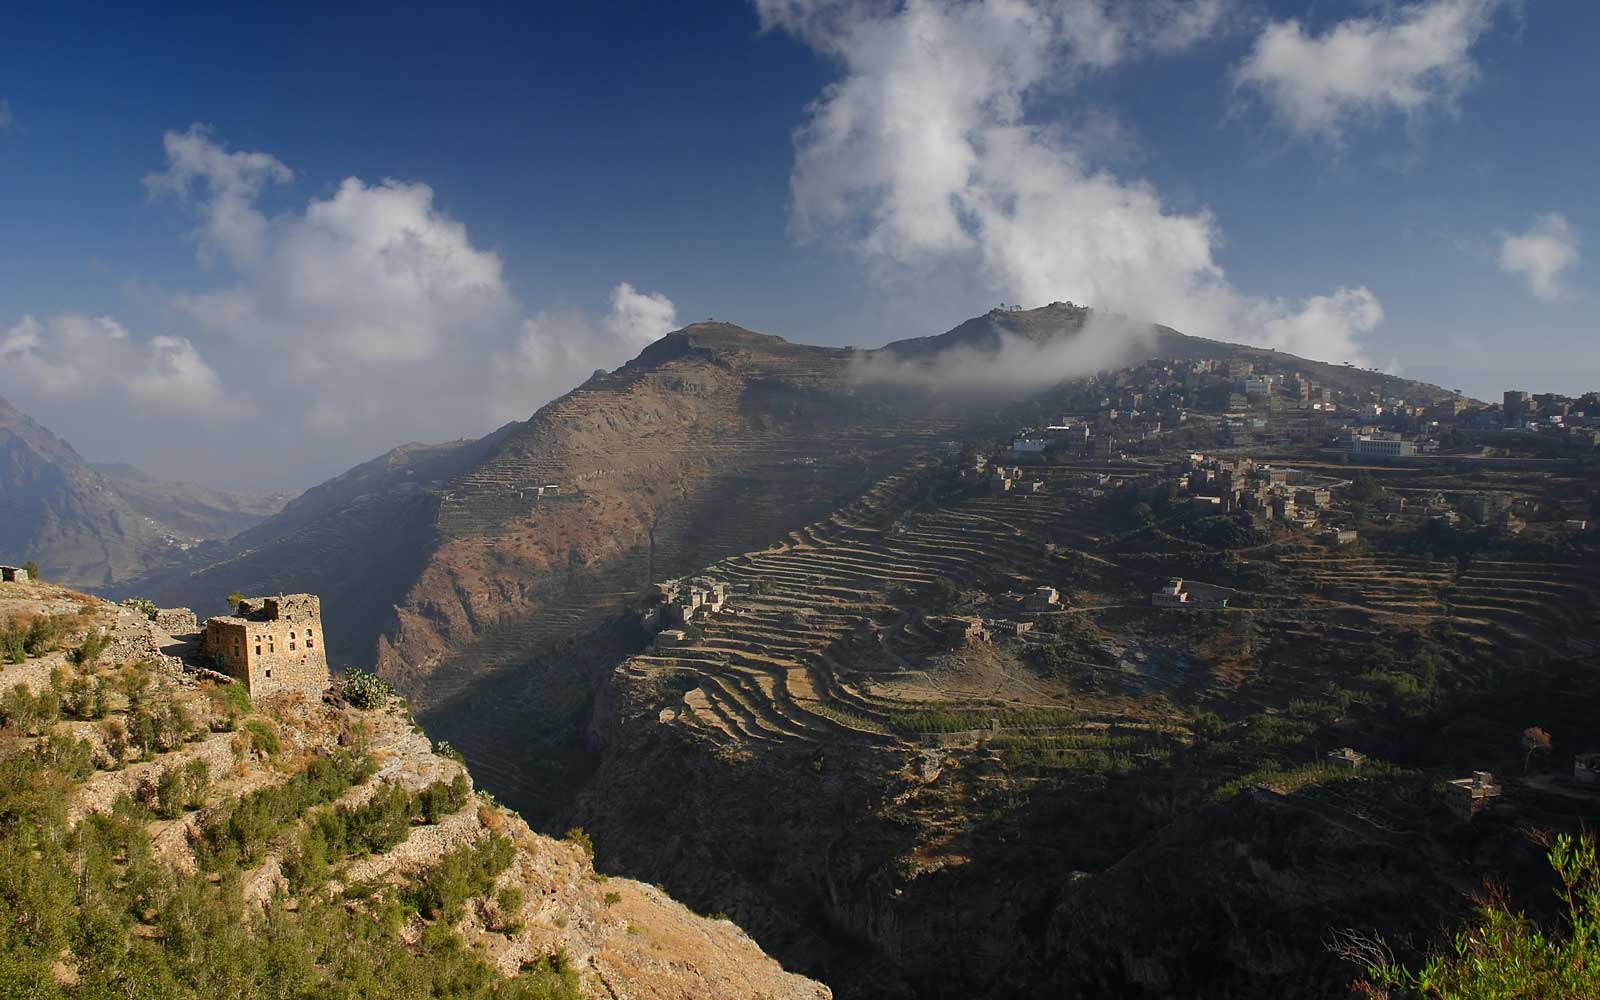 Yemen coffee terraces reaching into the clouds